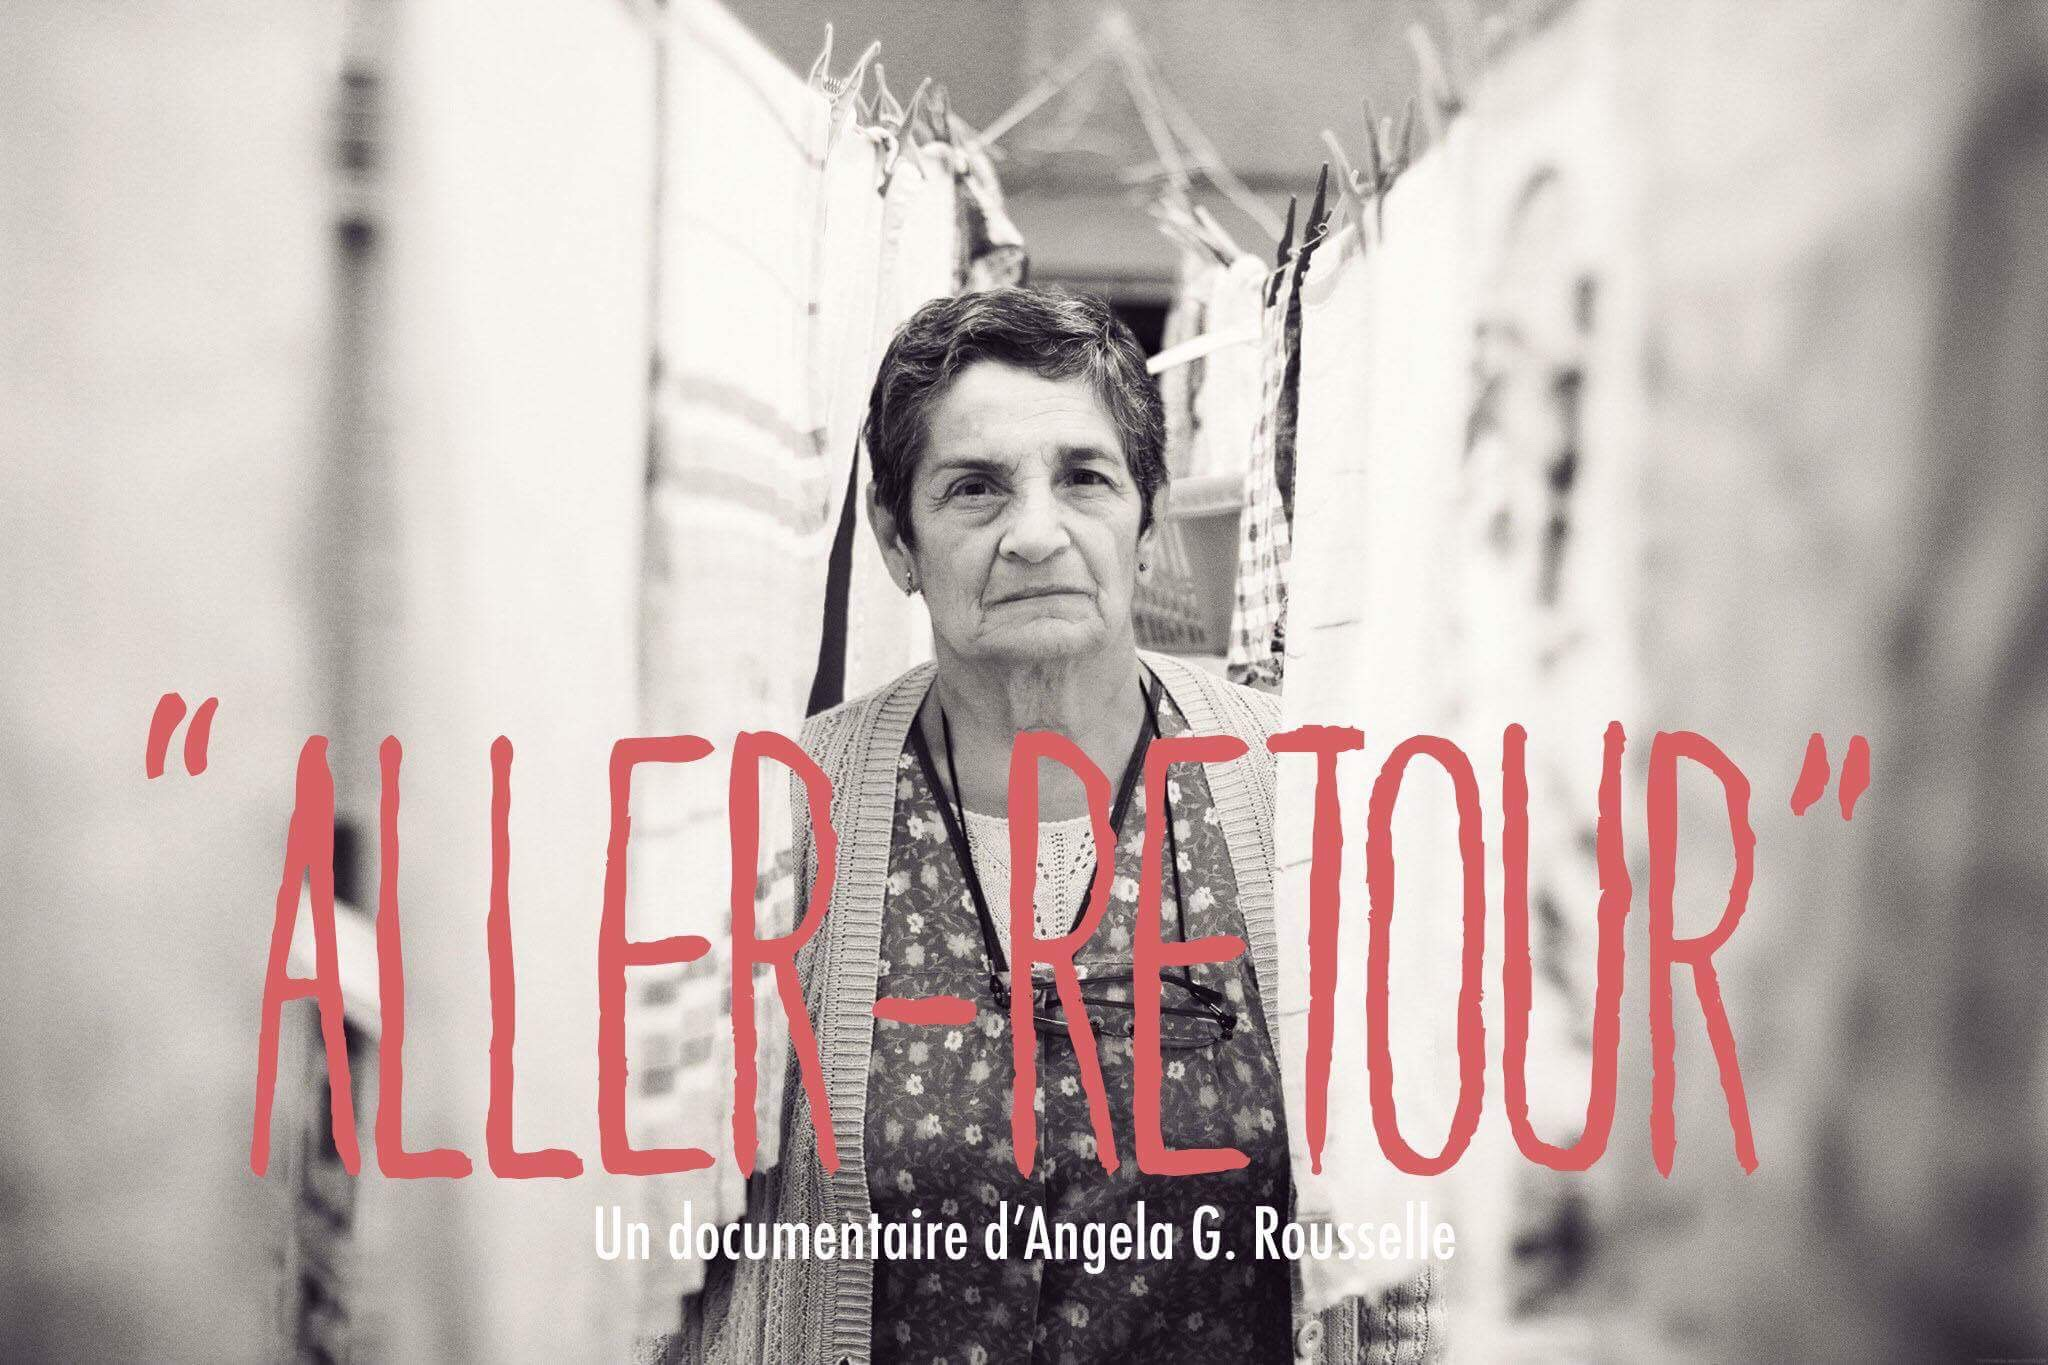 Aller-retour, documentaire sur l'immigration.